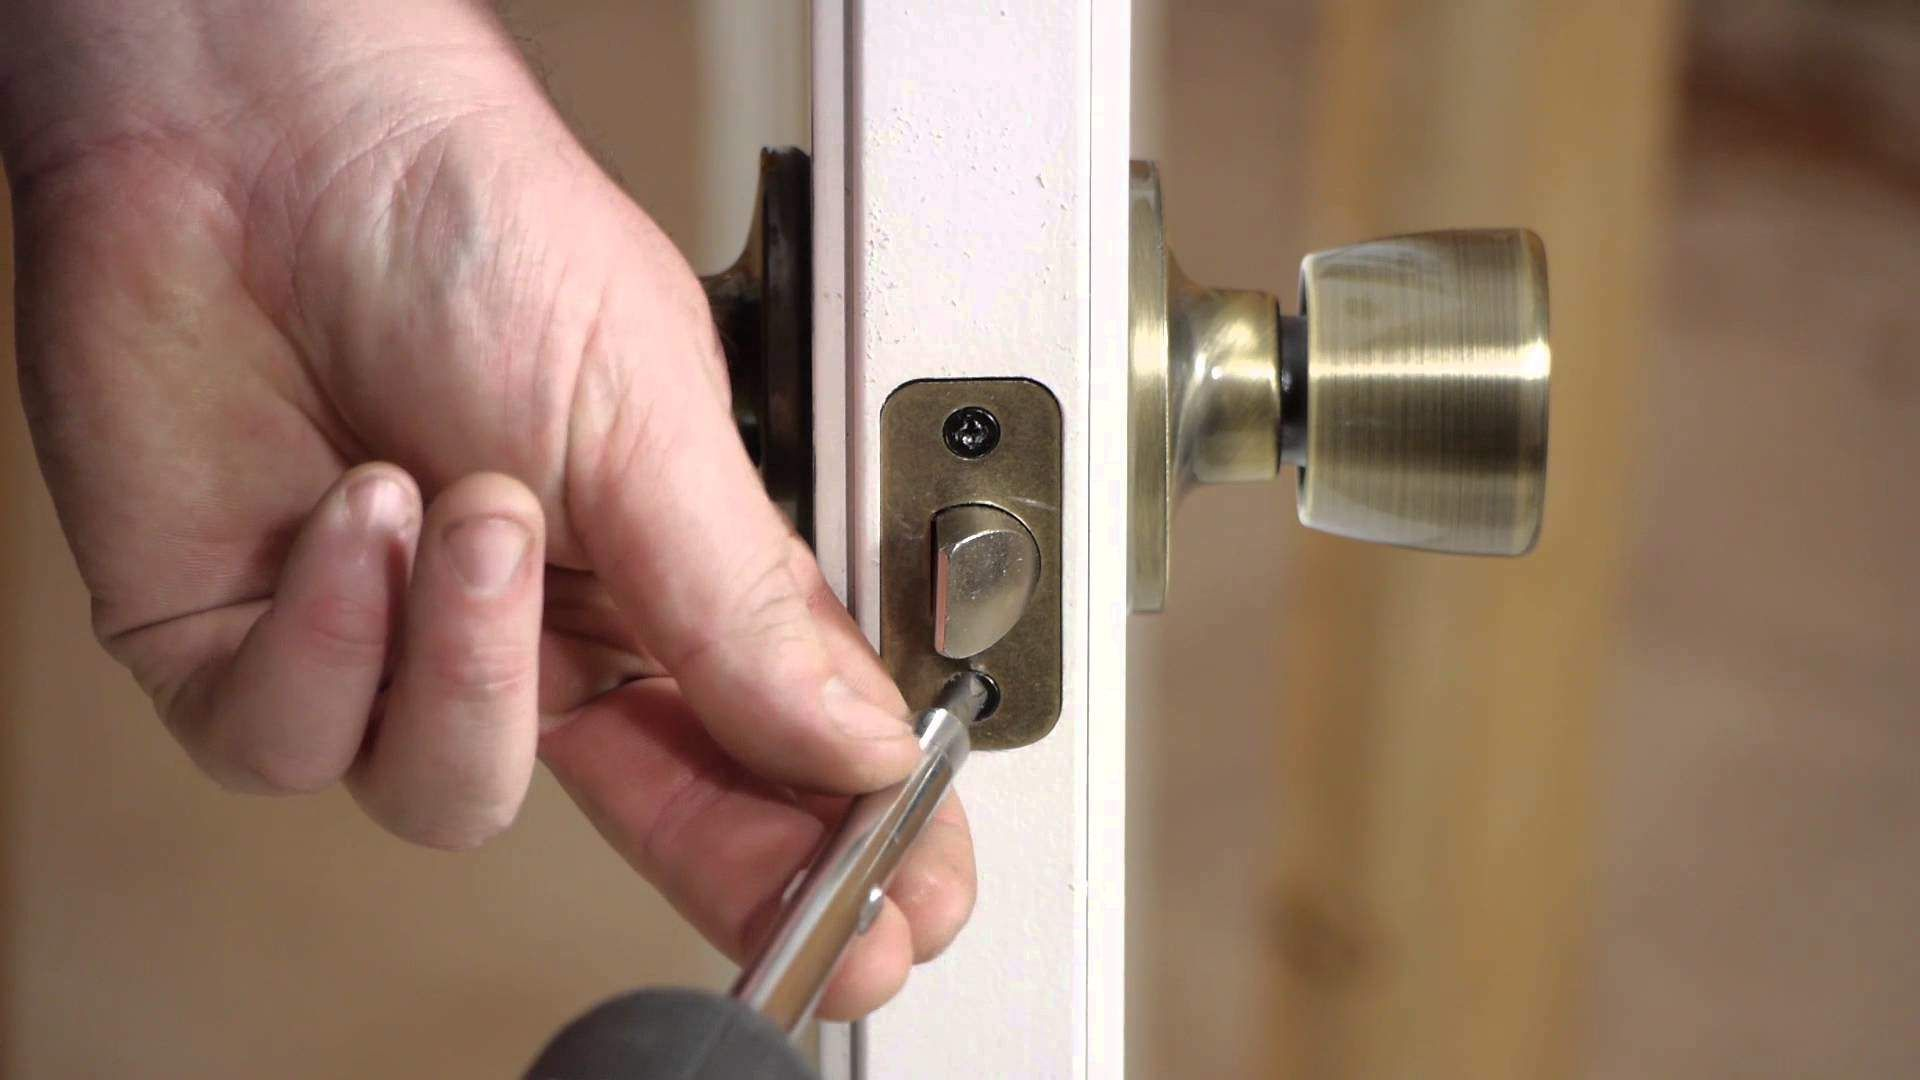 Reasons For Rekeying Your Locks